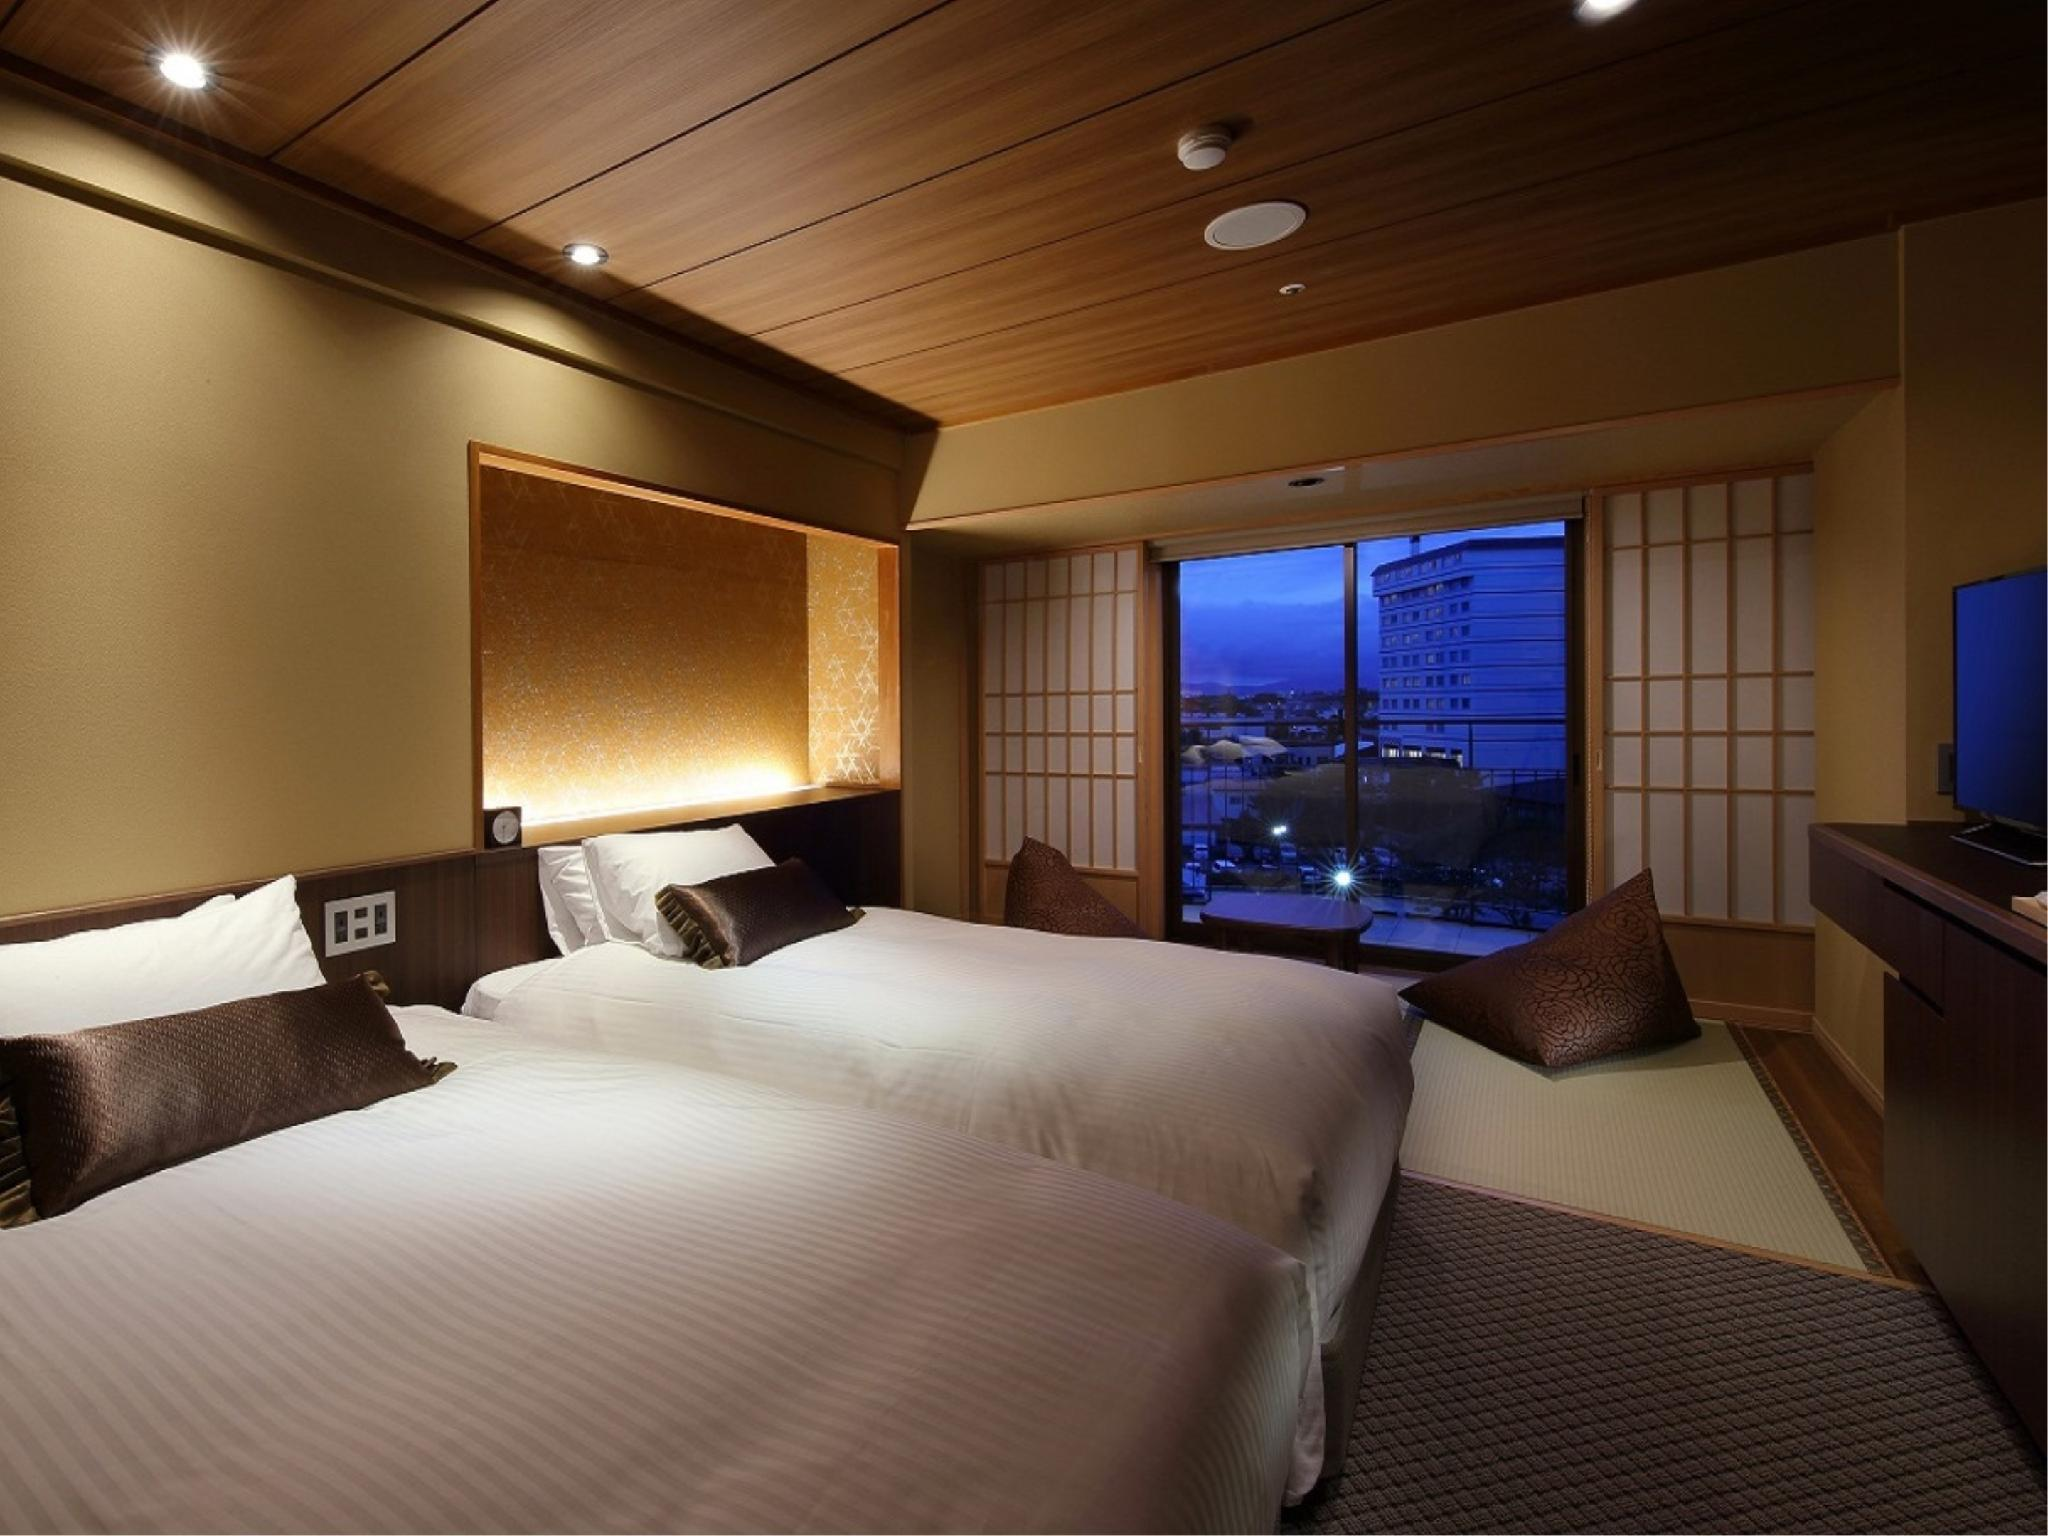 和洋式房+阳台(2张床) (Standard Japanese/Western-style Room with Balcony (2 Beds, Type B))